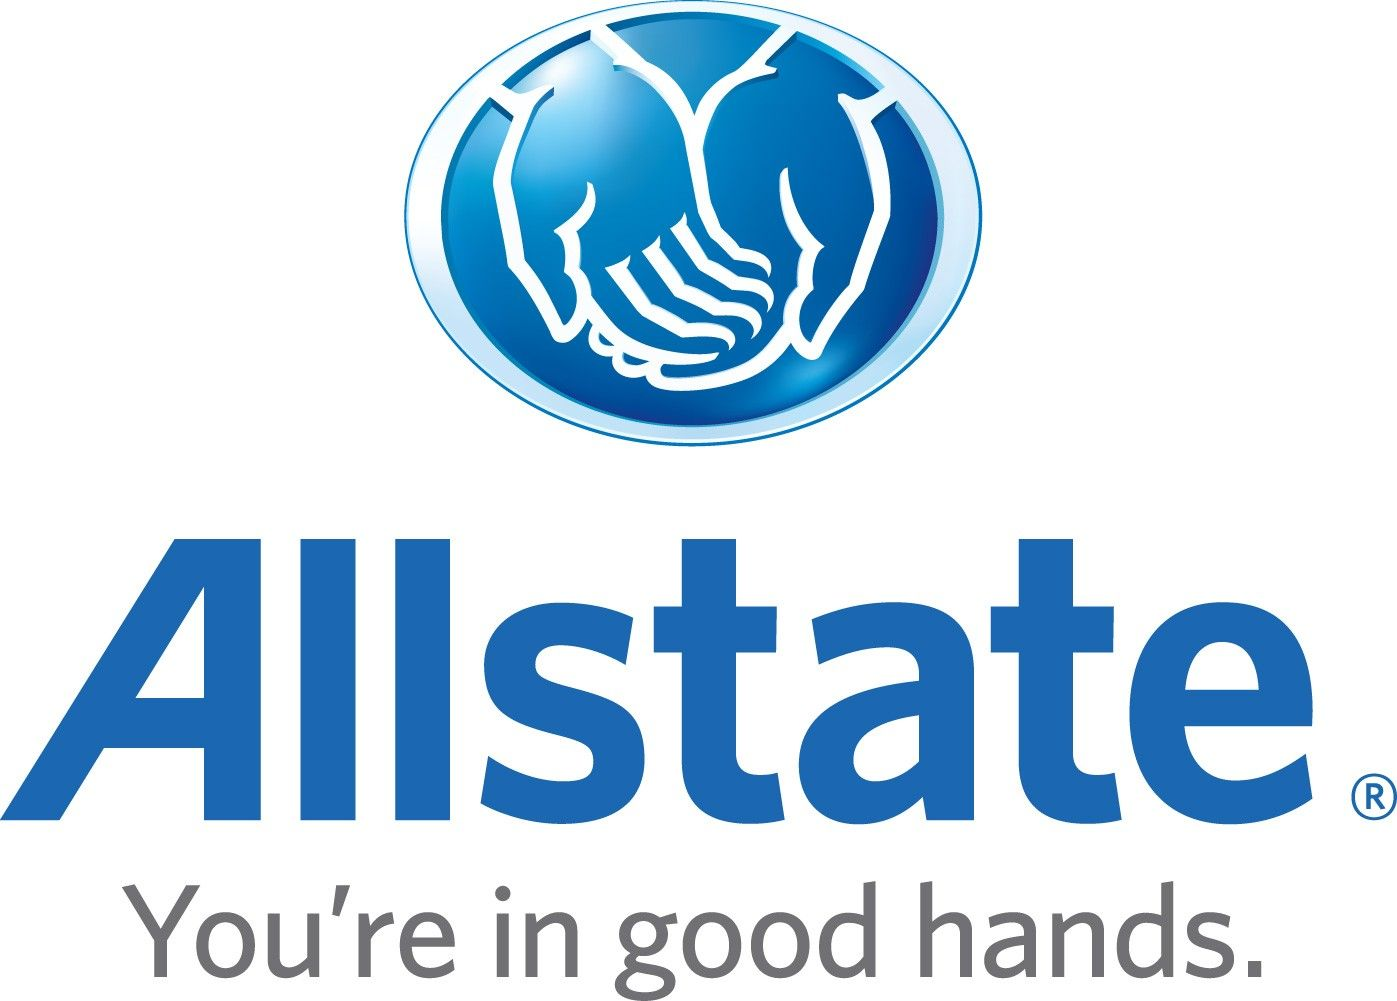 Allstate Auto Insurance Quote Allstate Logo  Google Search  Brand Logos  Pinterest